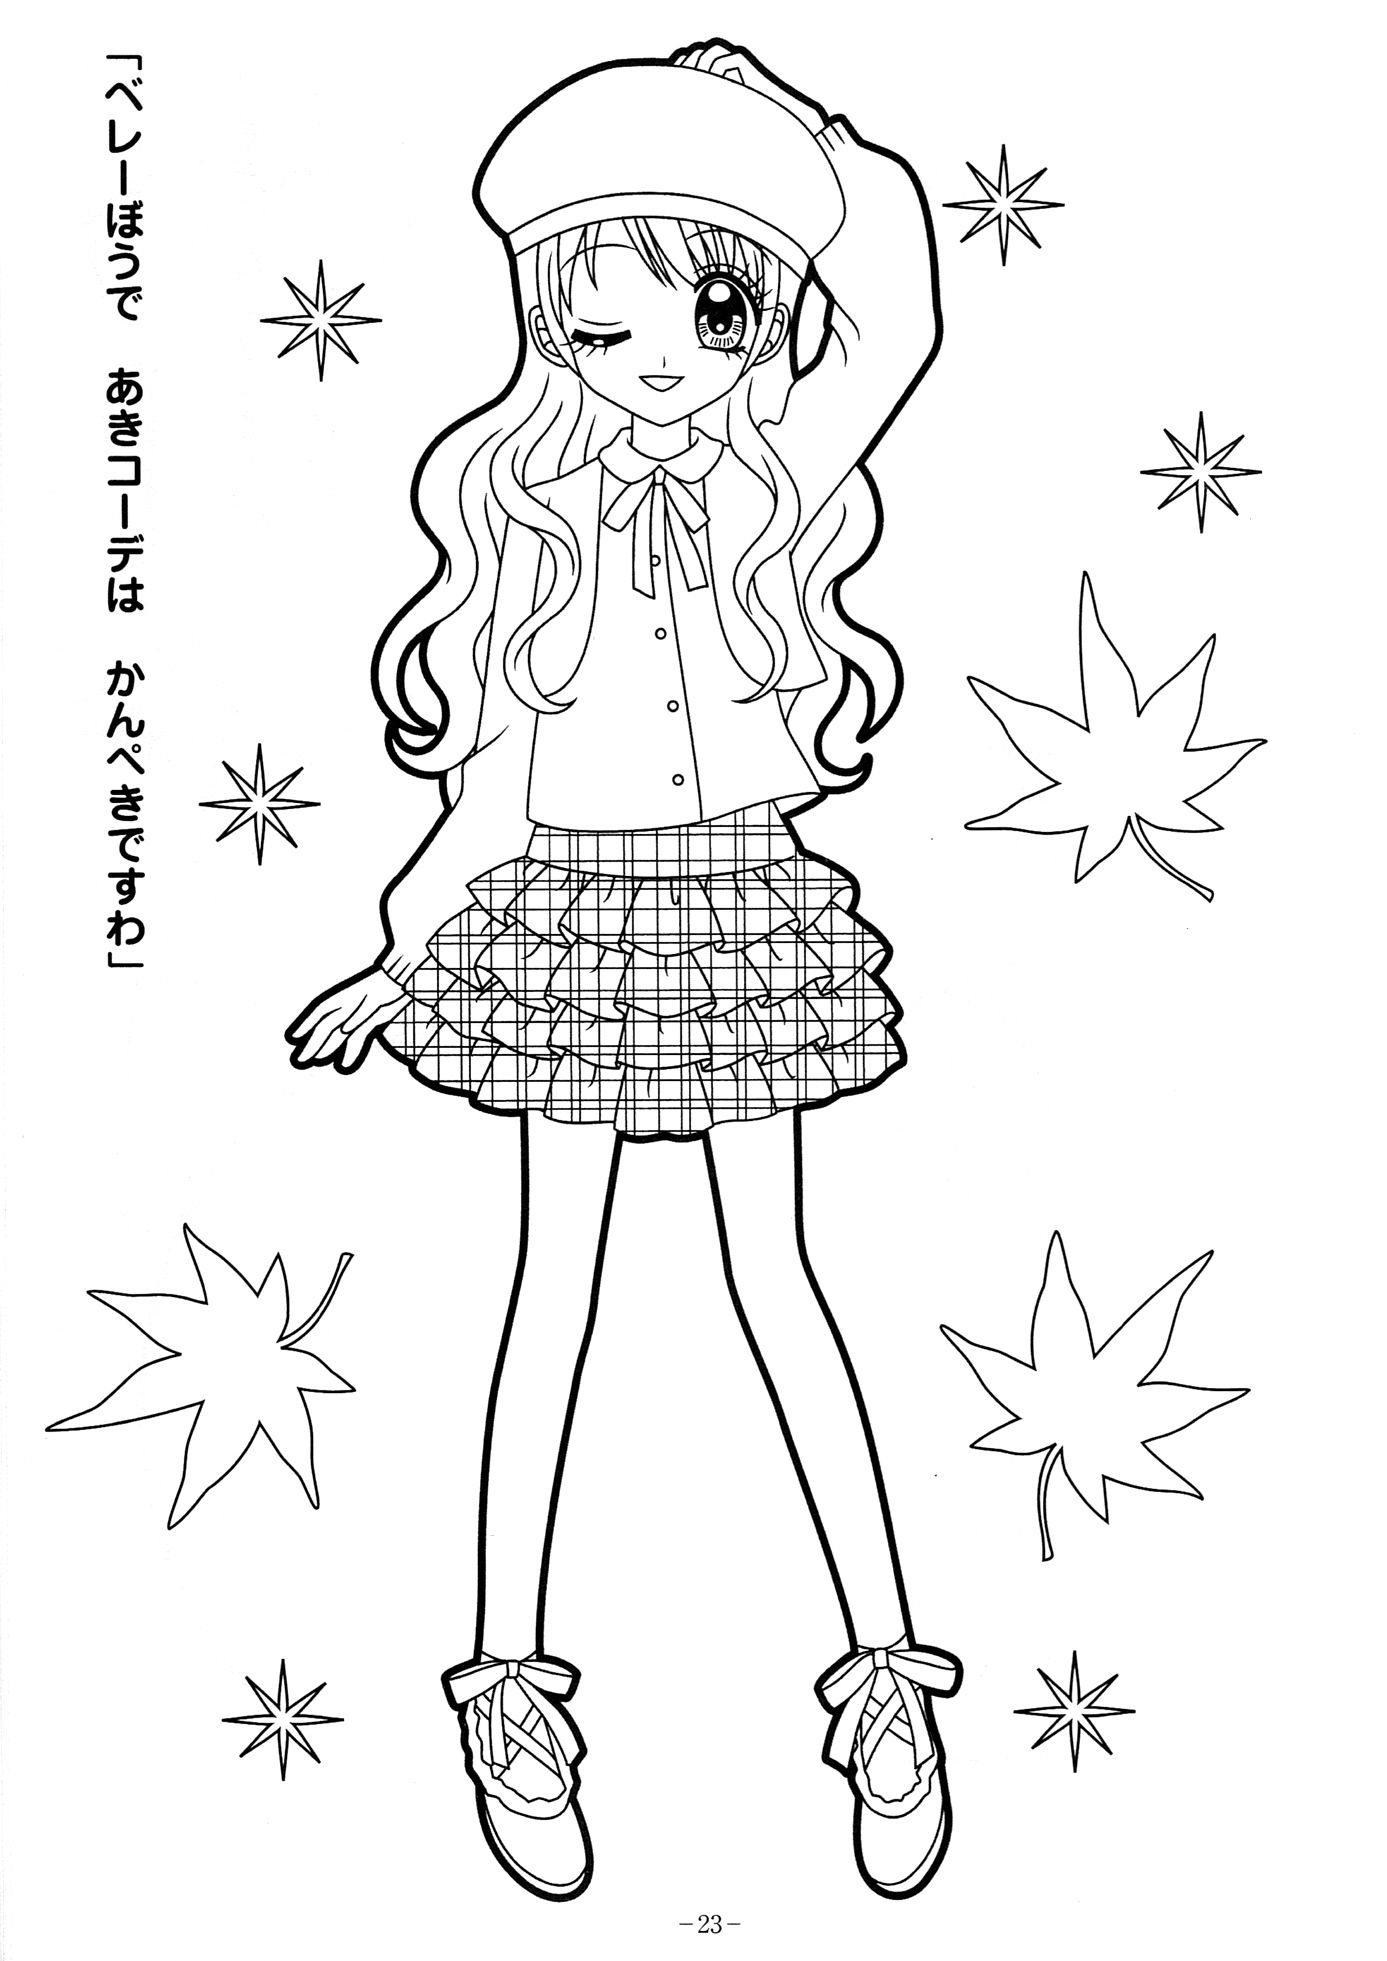 Coloring book for girl - Anime Girl Coloring Pages Mechamote Lincho